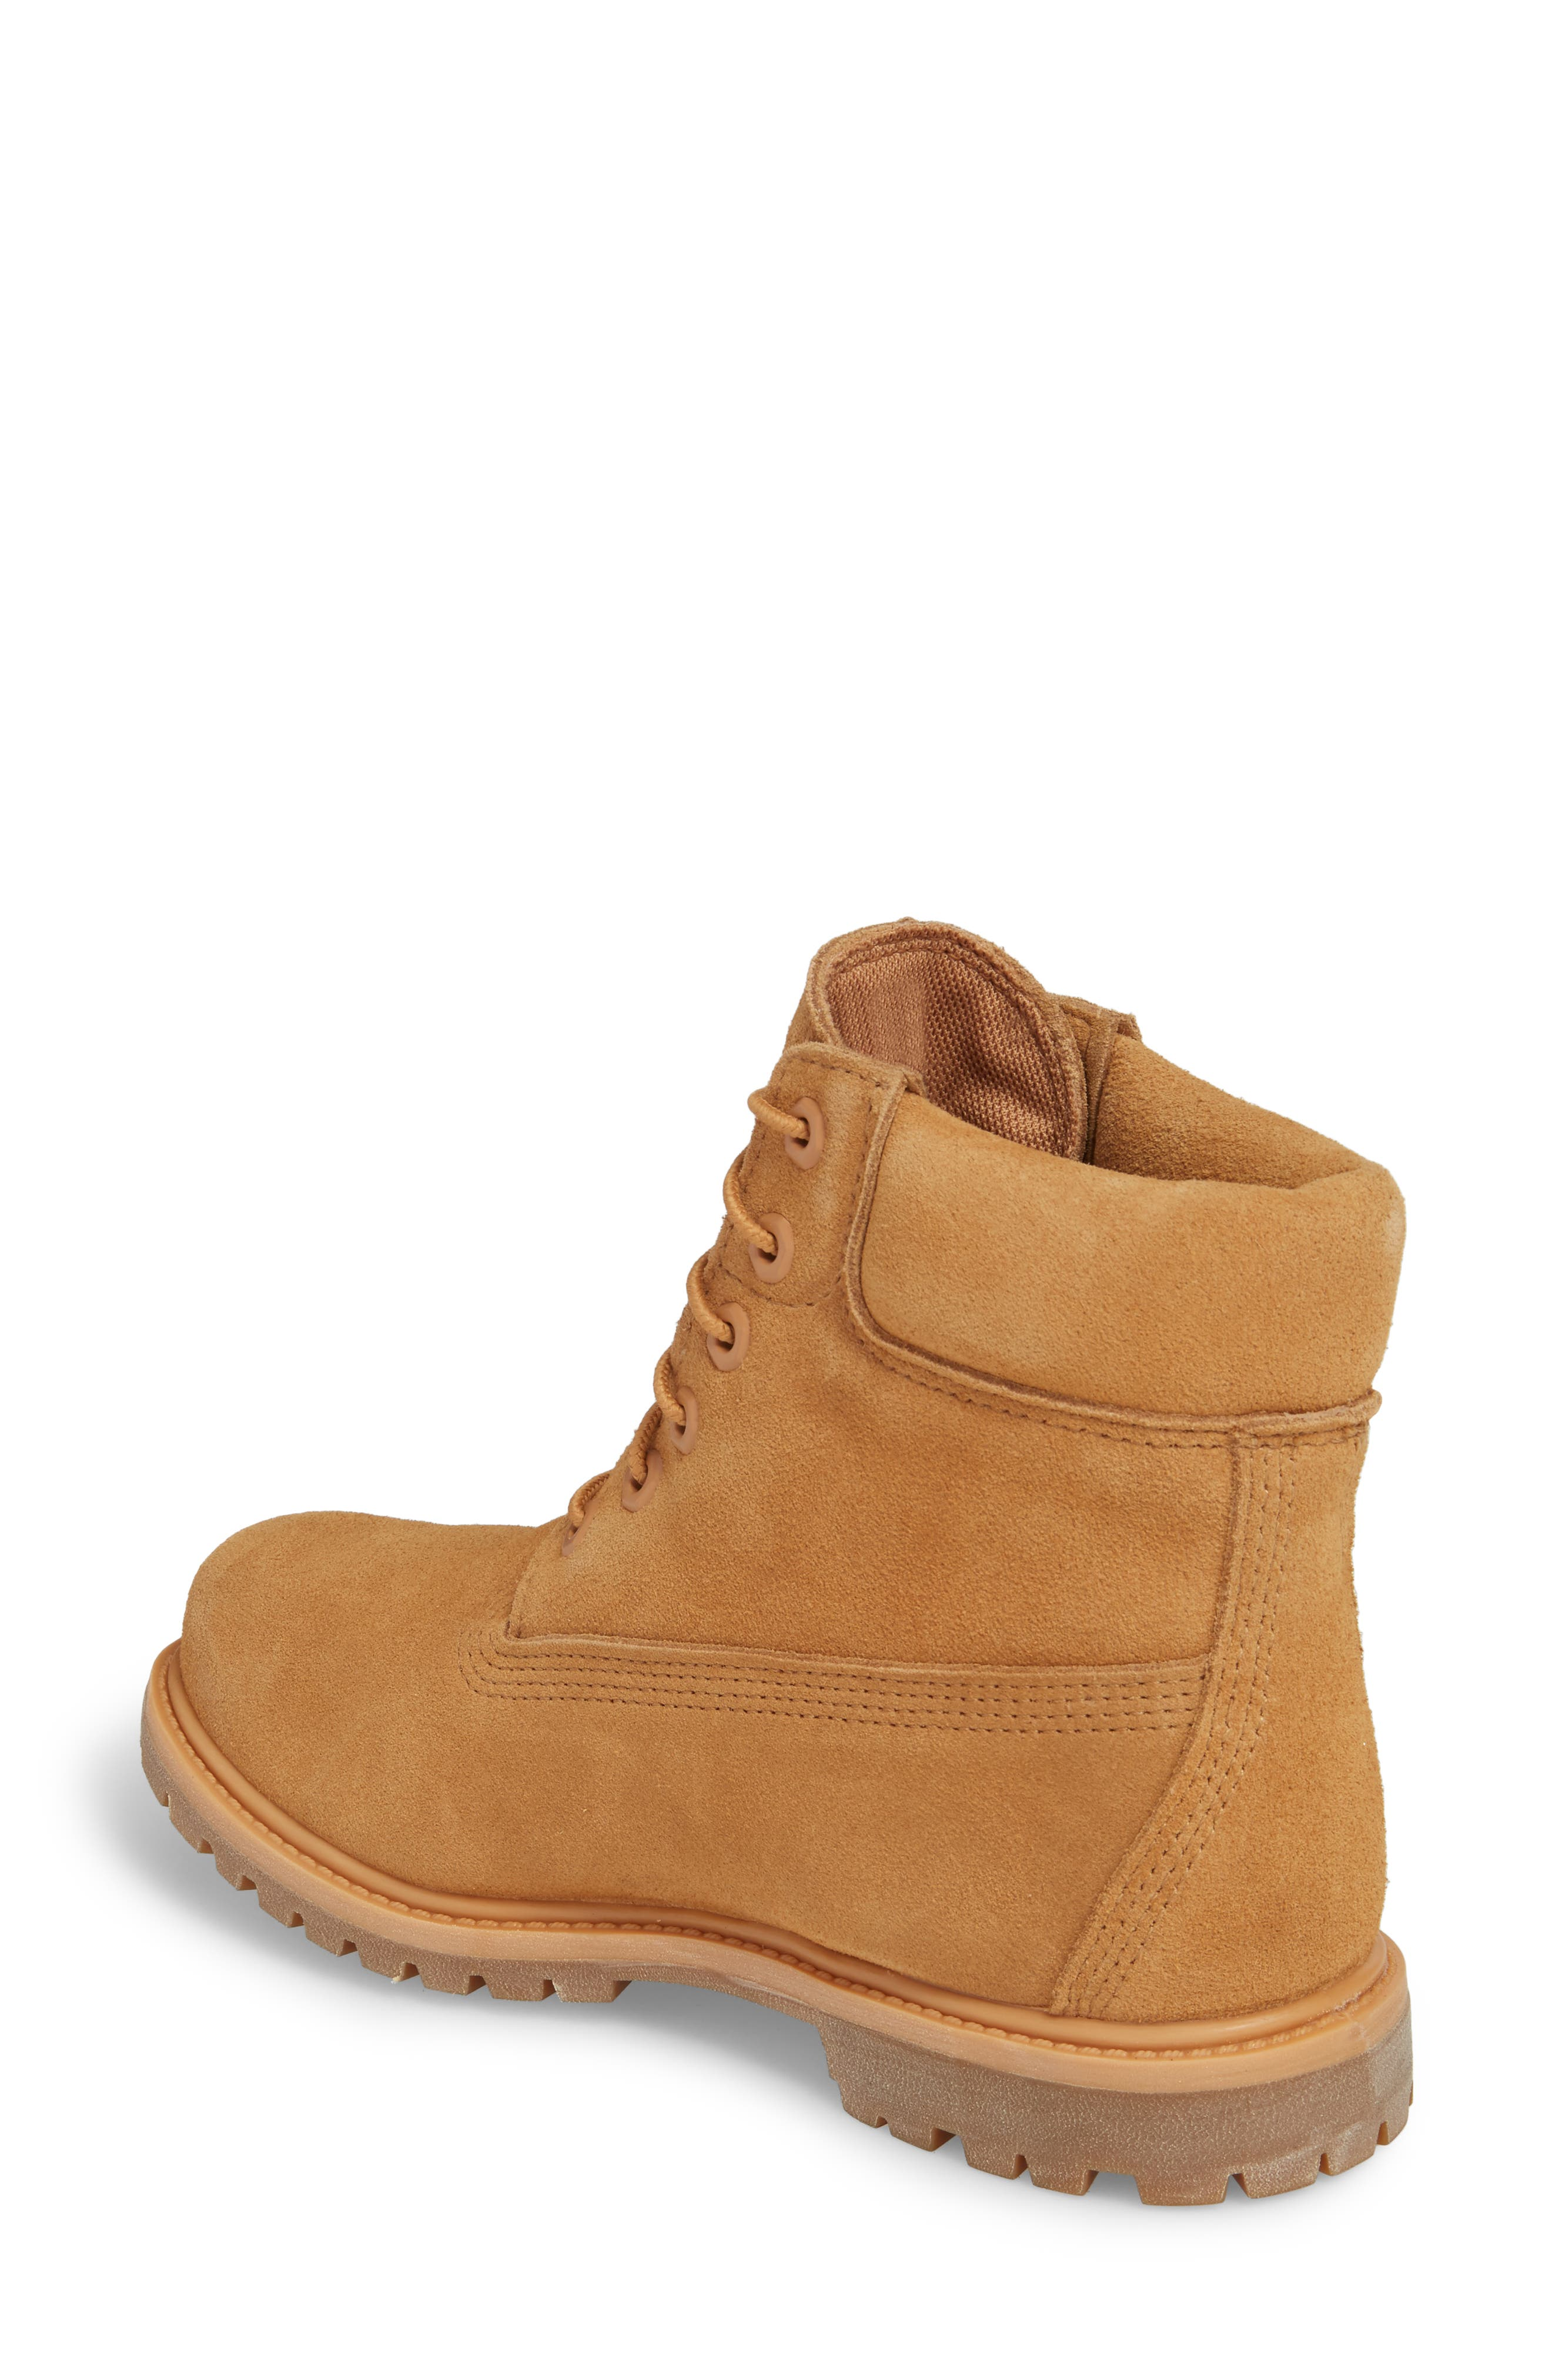 6 Inch Boot,                             Alternate thumbnail 2, color,                             230